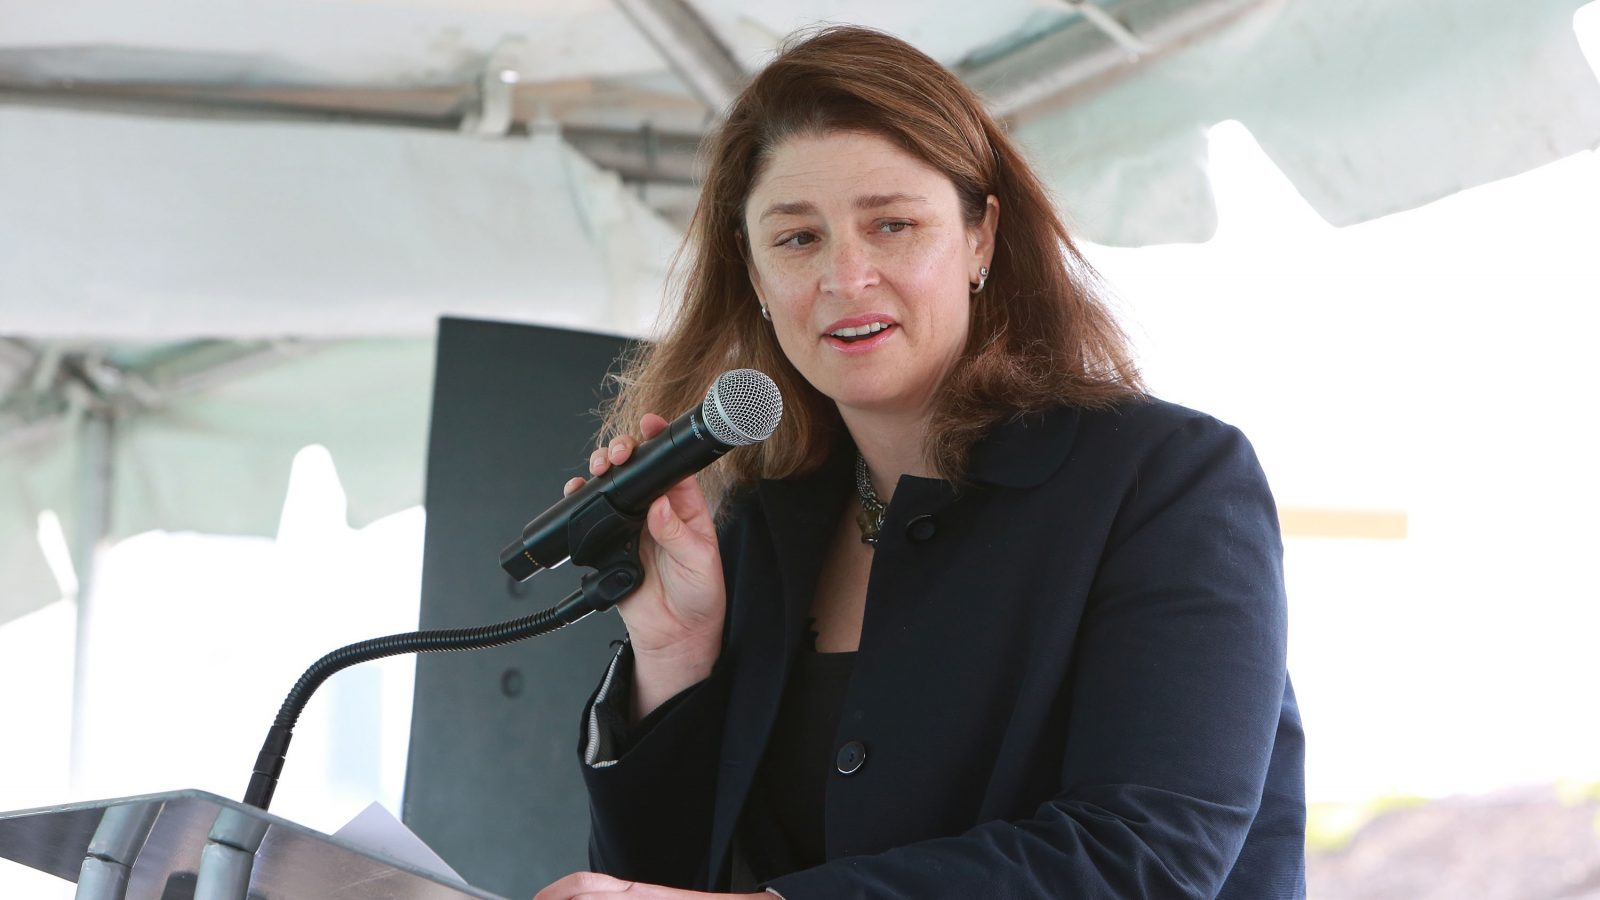 Deputy Mayor Alicia Glen speaks at the Dock 72 groundbreaking ceremony held at the Brooklyn Grange on Thursday, May 5, 2016 in Brooklyn, NY. (Photo by Amy Sussman/AP Images for Rudin Development)